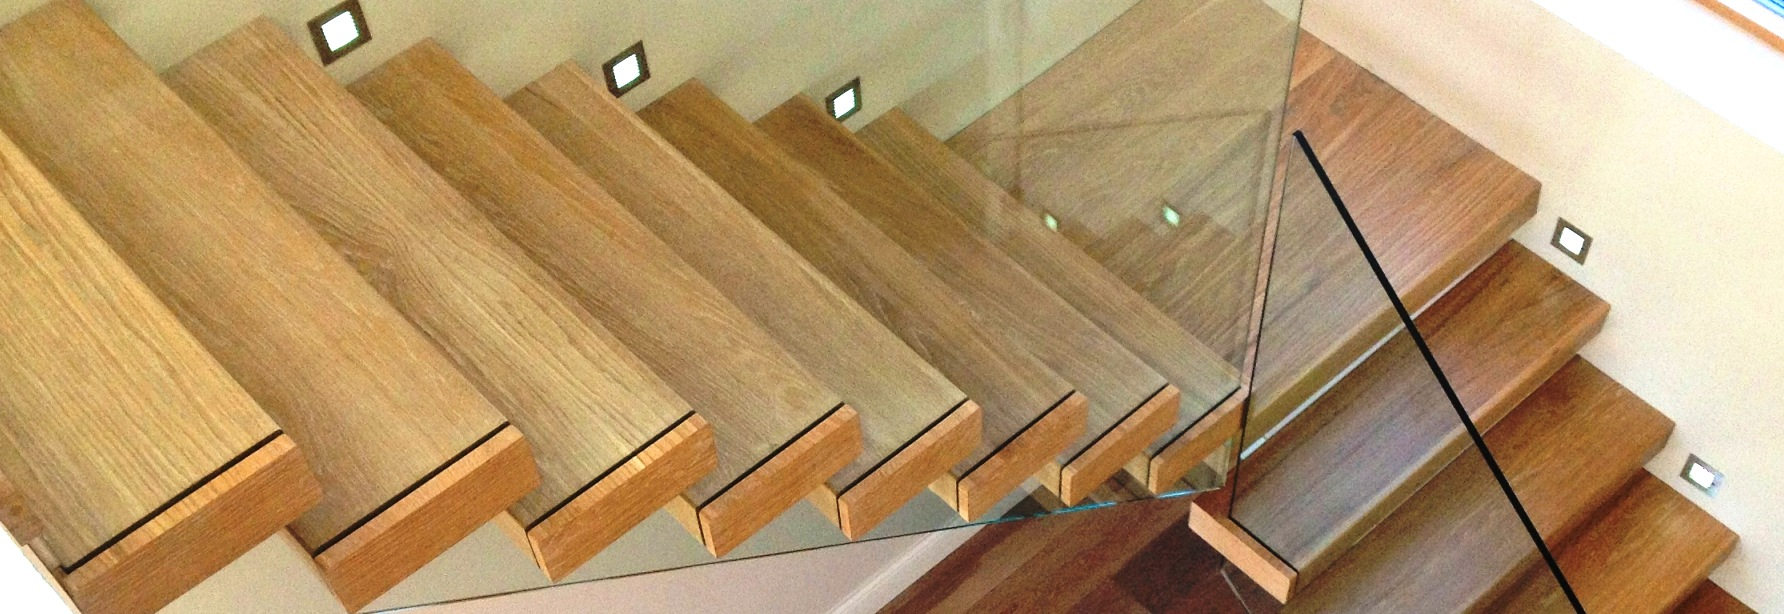 Staircases Stairs Ireland Stairs Design